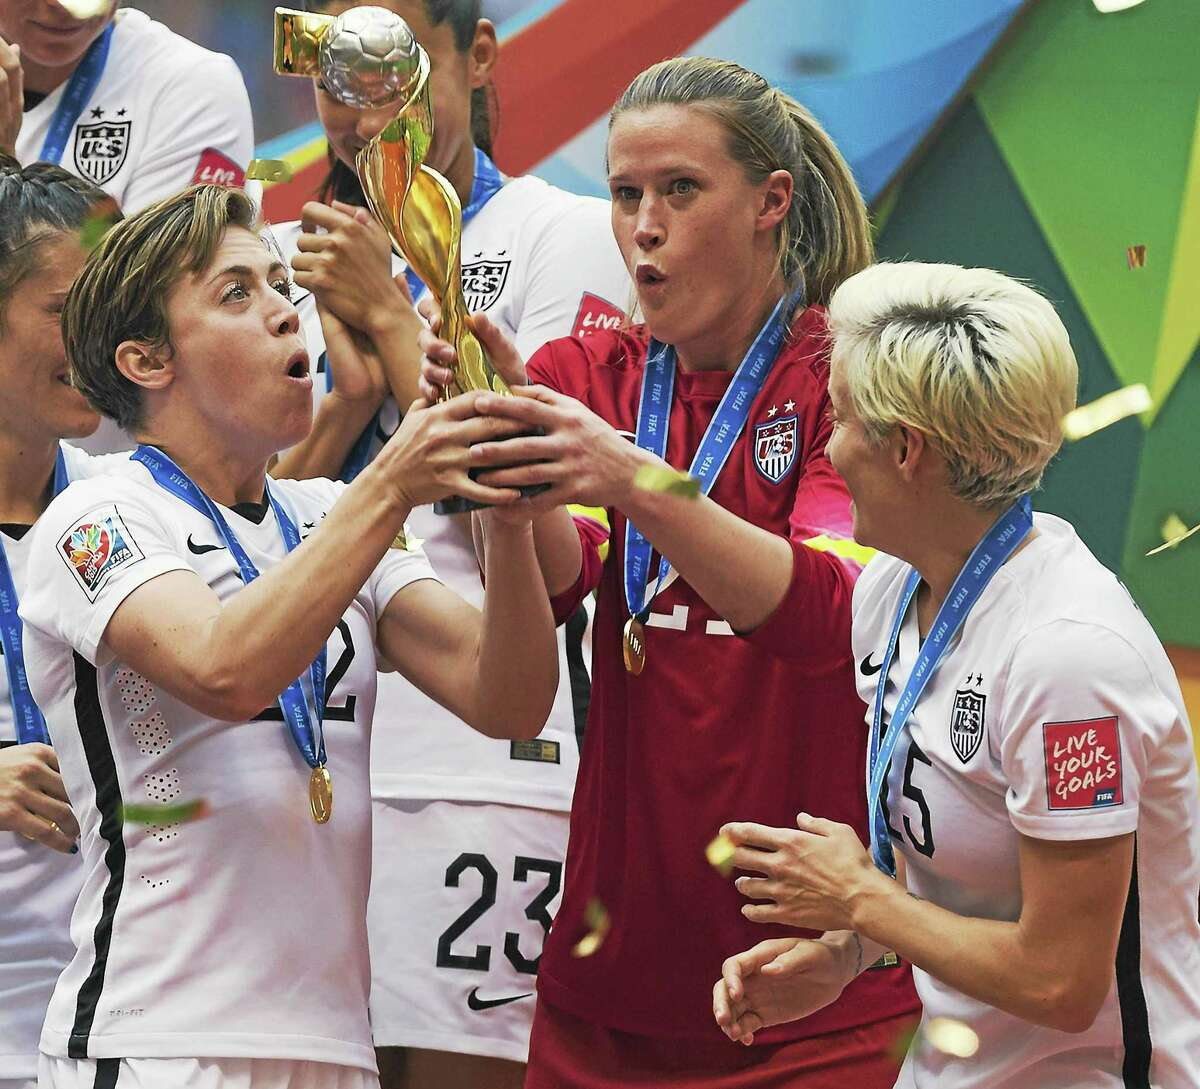 Seymour's Alyssa Naeher, in red, celebrates after the United States Women's National Team's 5-2 victory over Japan in the World Cup final on July 5 in Vancouver, British Columbia.